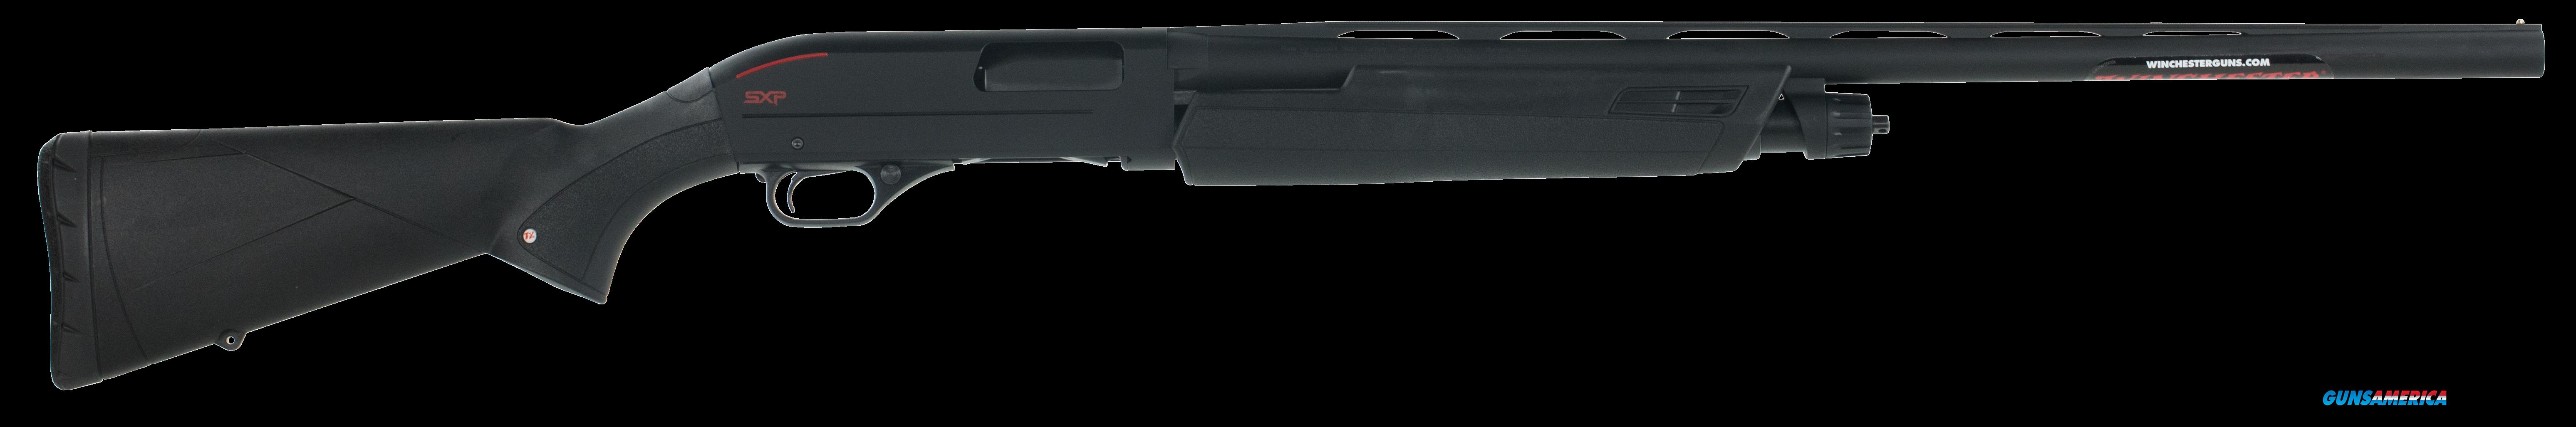 "Winchester Guns 512251391 SXP 12 Gauge 26"" 3"" Blk Synthetic Stk Blk Rcvr  Guns > Shotguns > W Misc Shotguns"